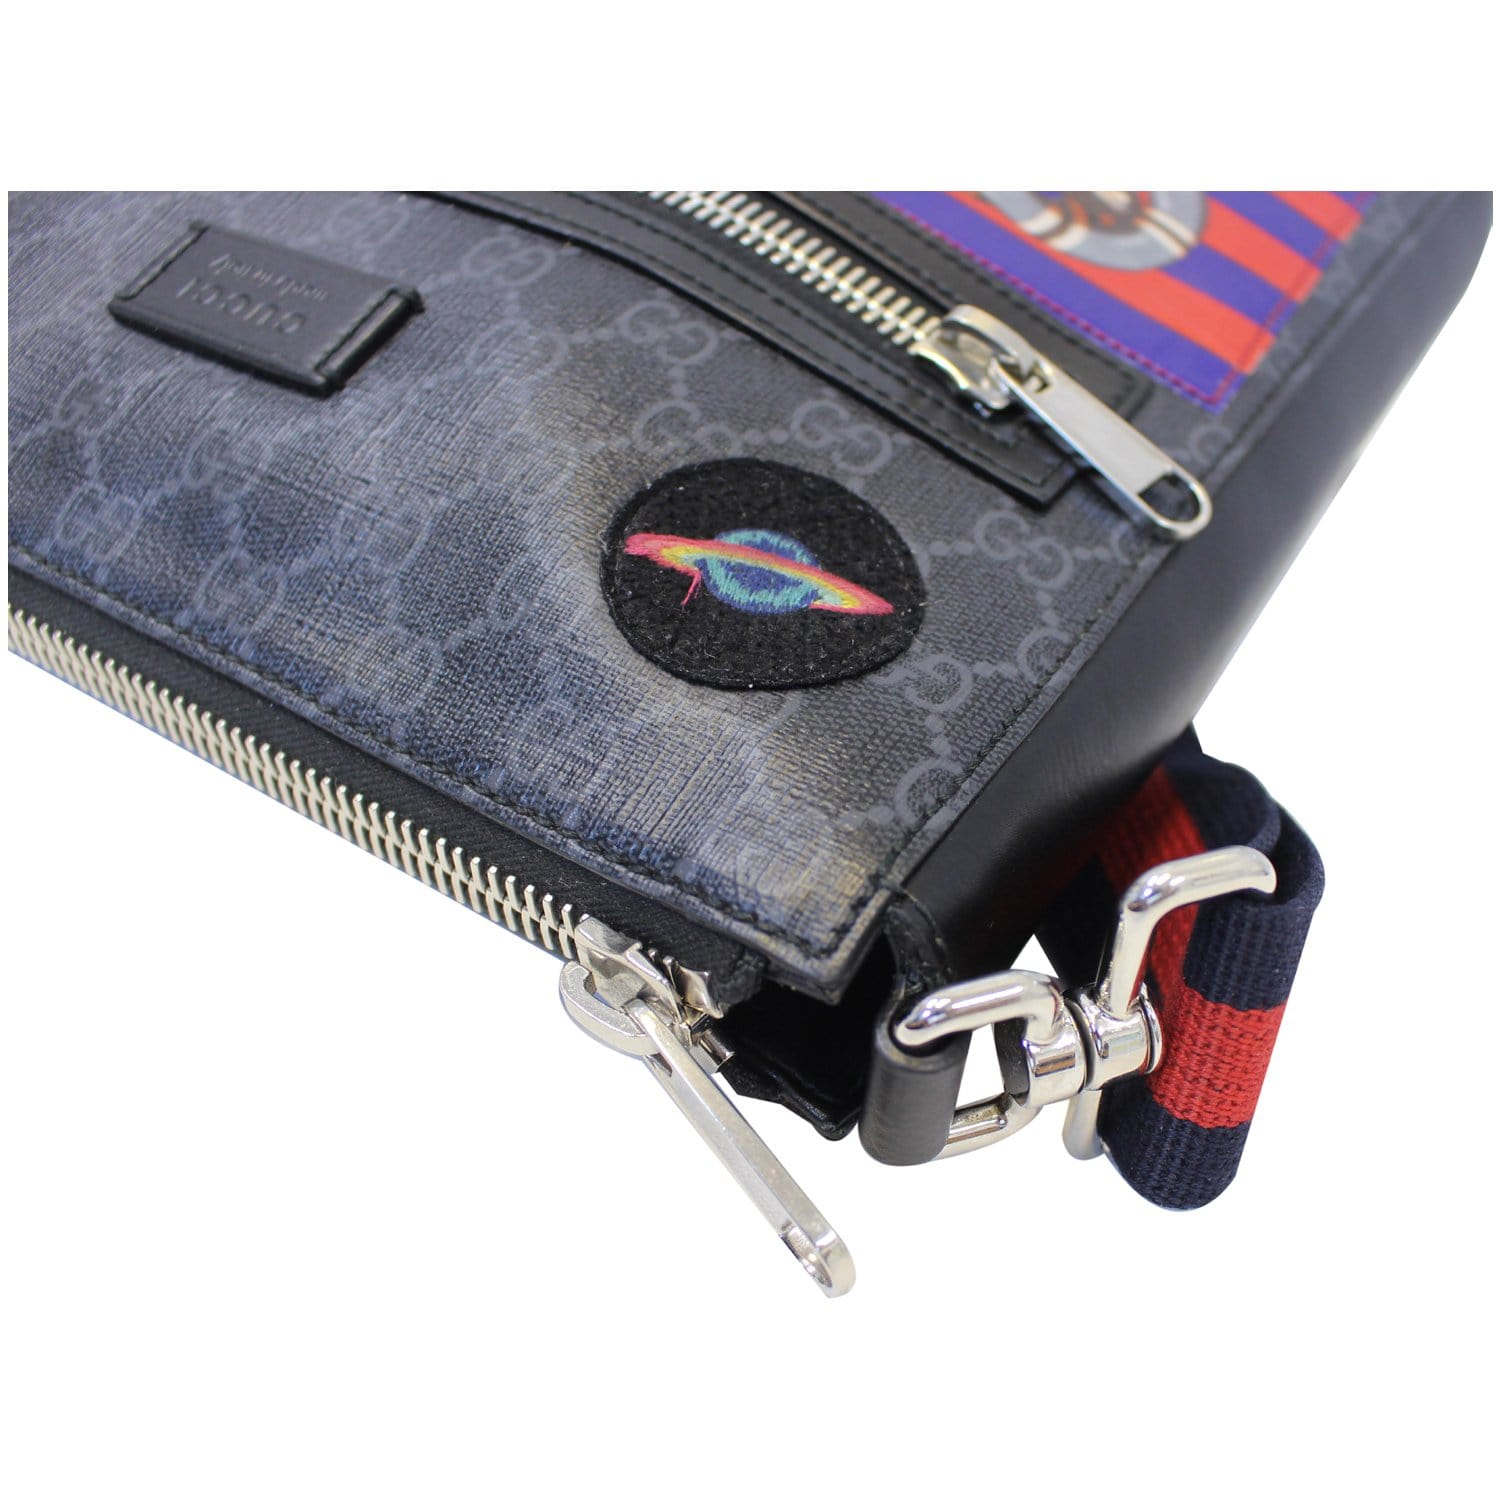 66ac9bfd3 GUCCI Night Courrier GG Supreme Messenger Crossbody Bag Black/Grey-US